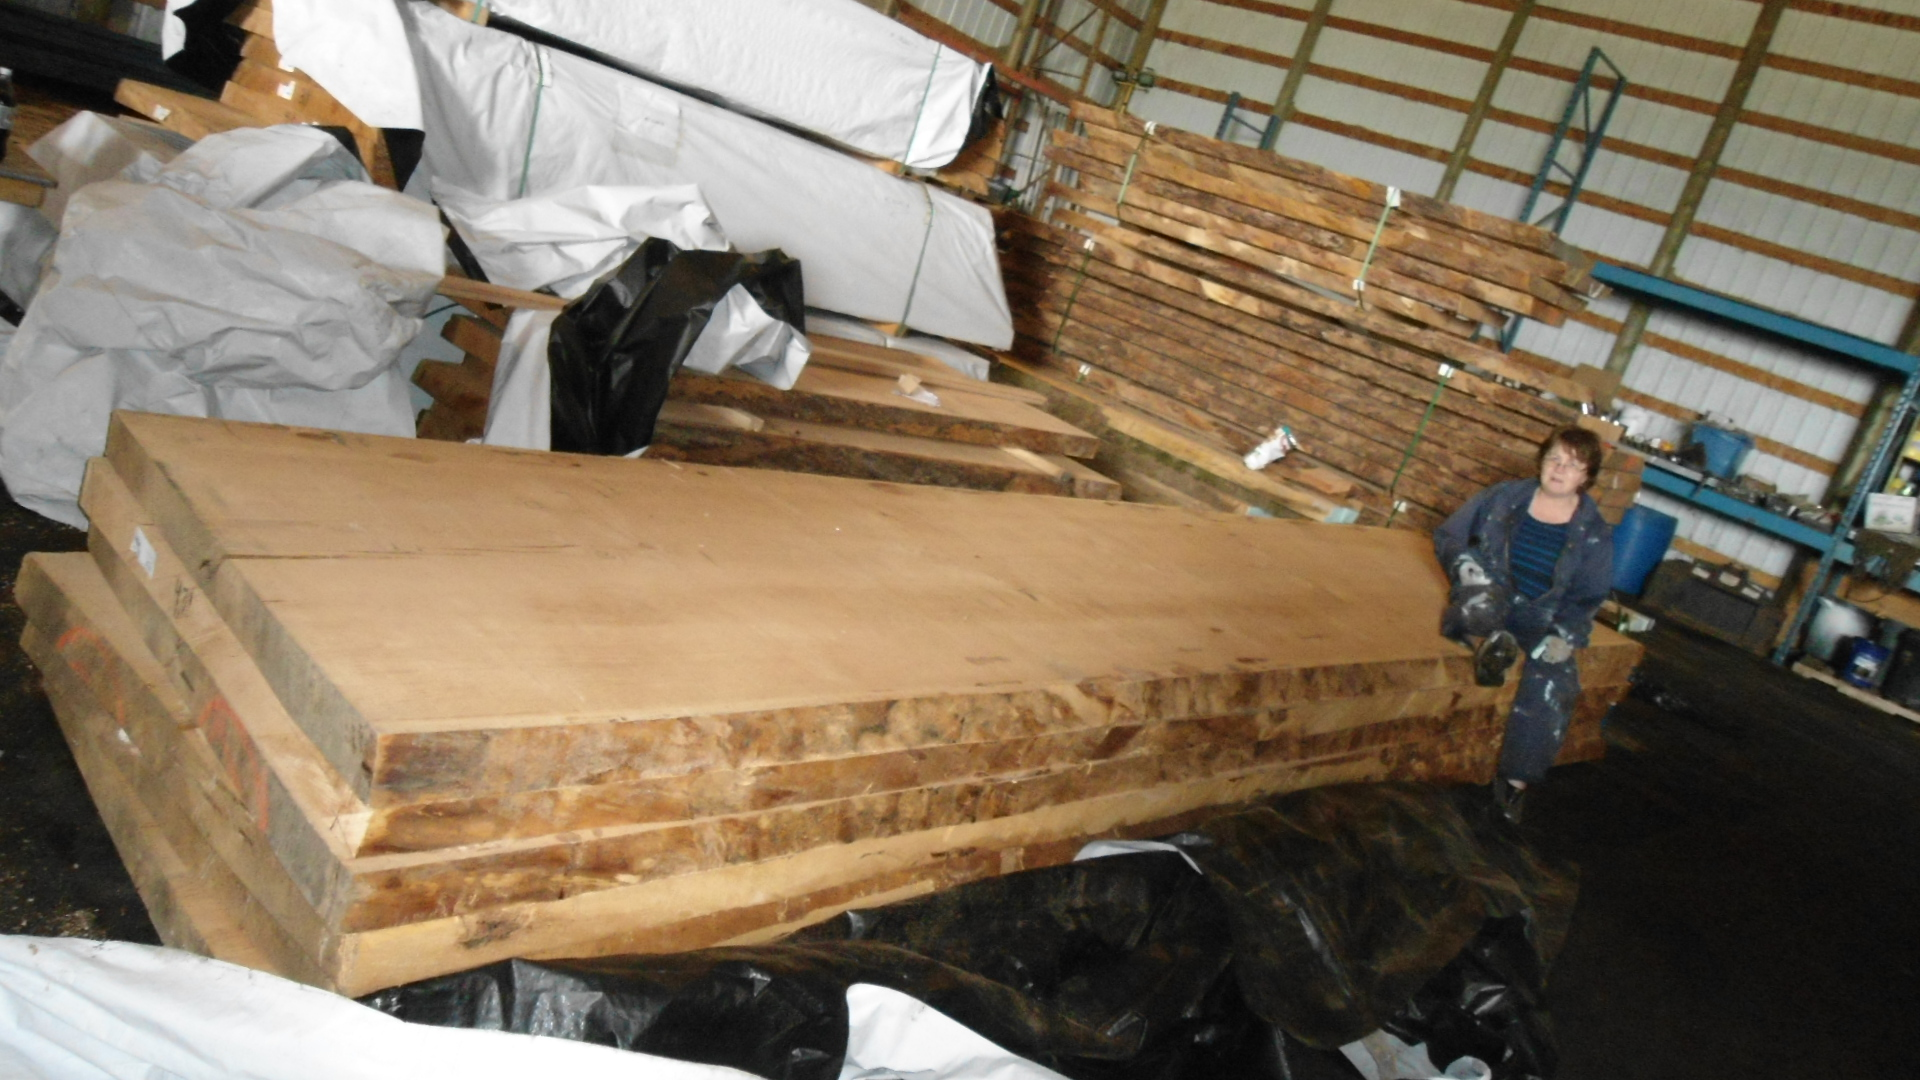 Refined rustic furniture live edge wood slabs for sale for Live edge slab lumber